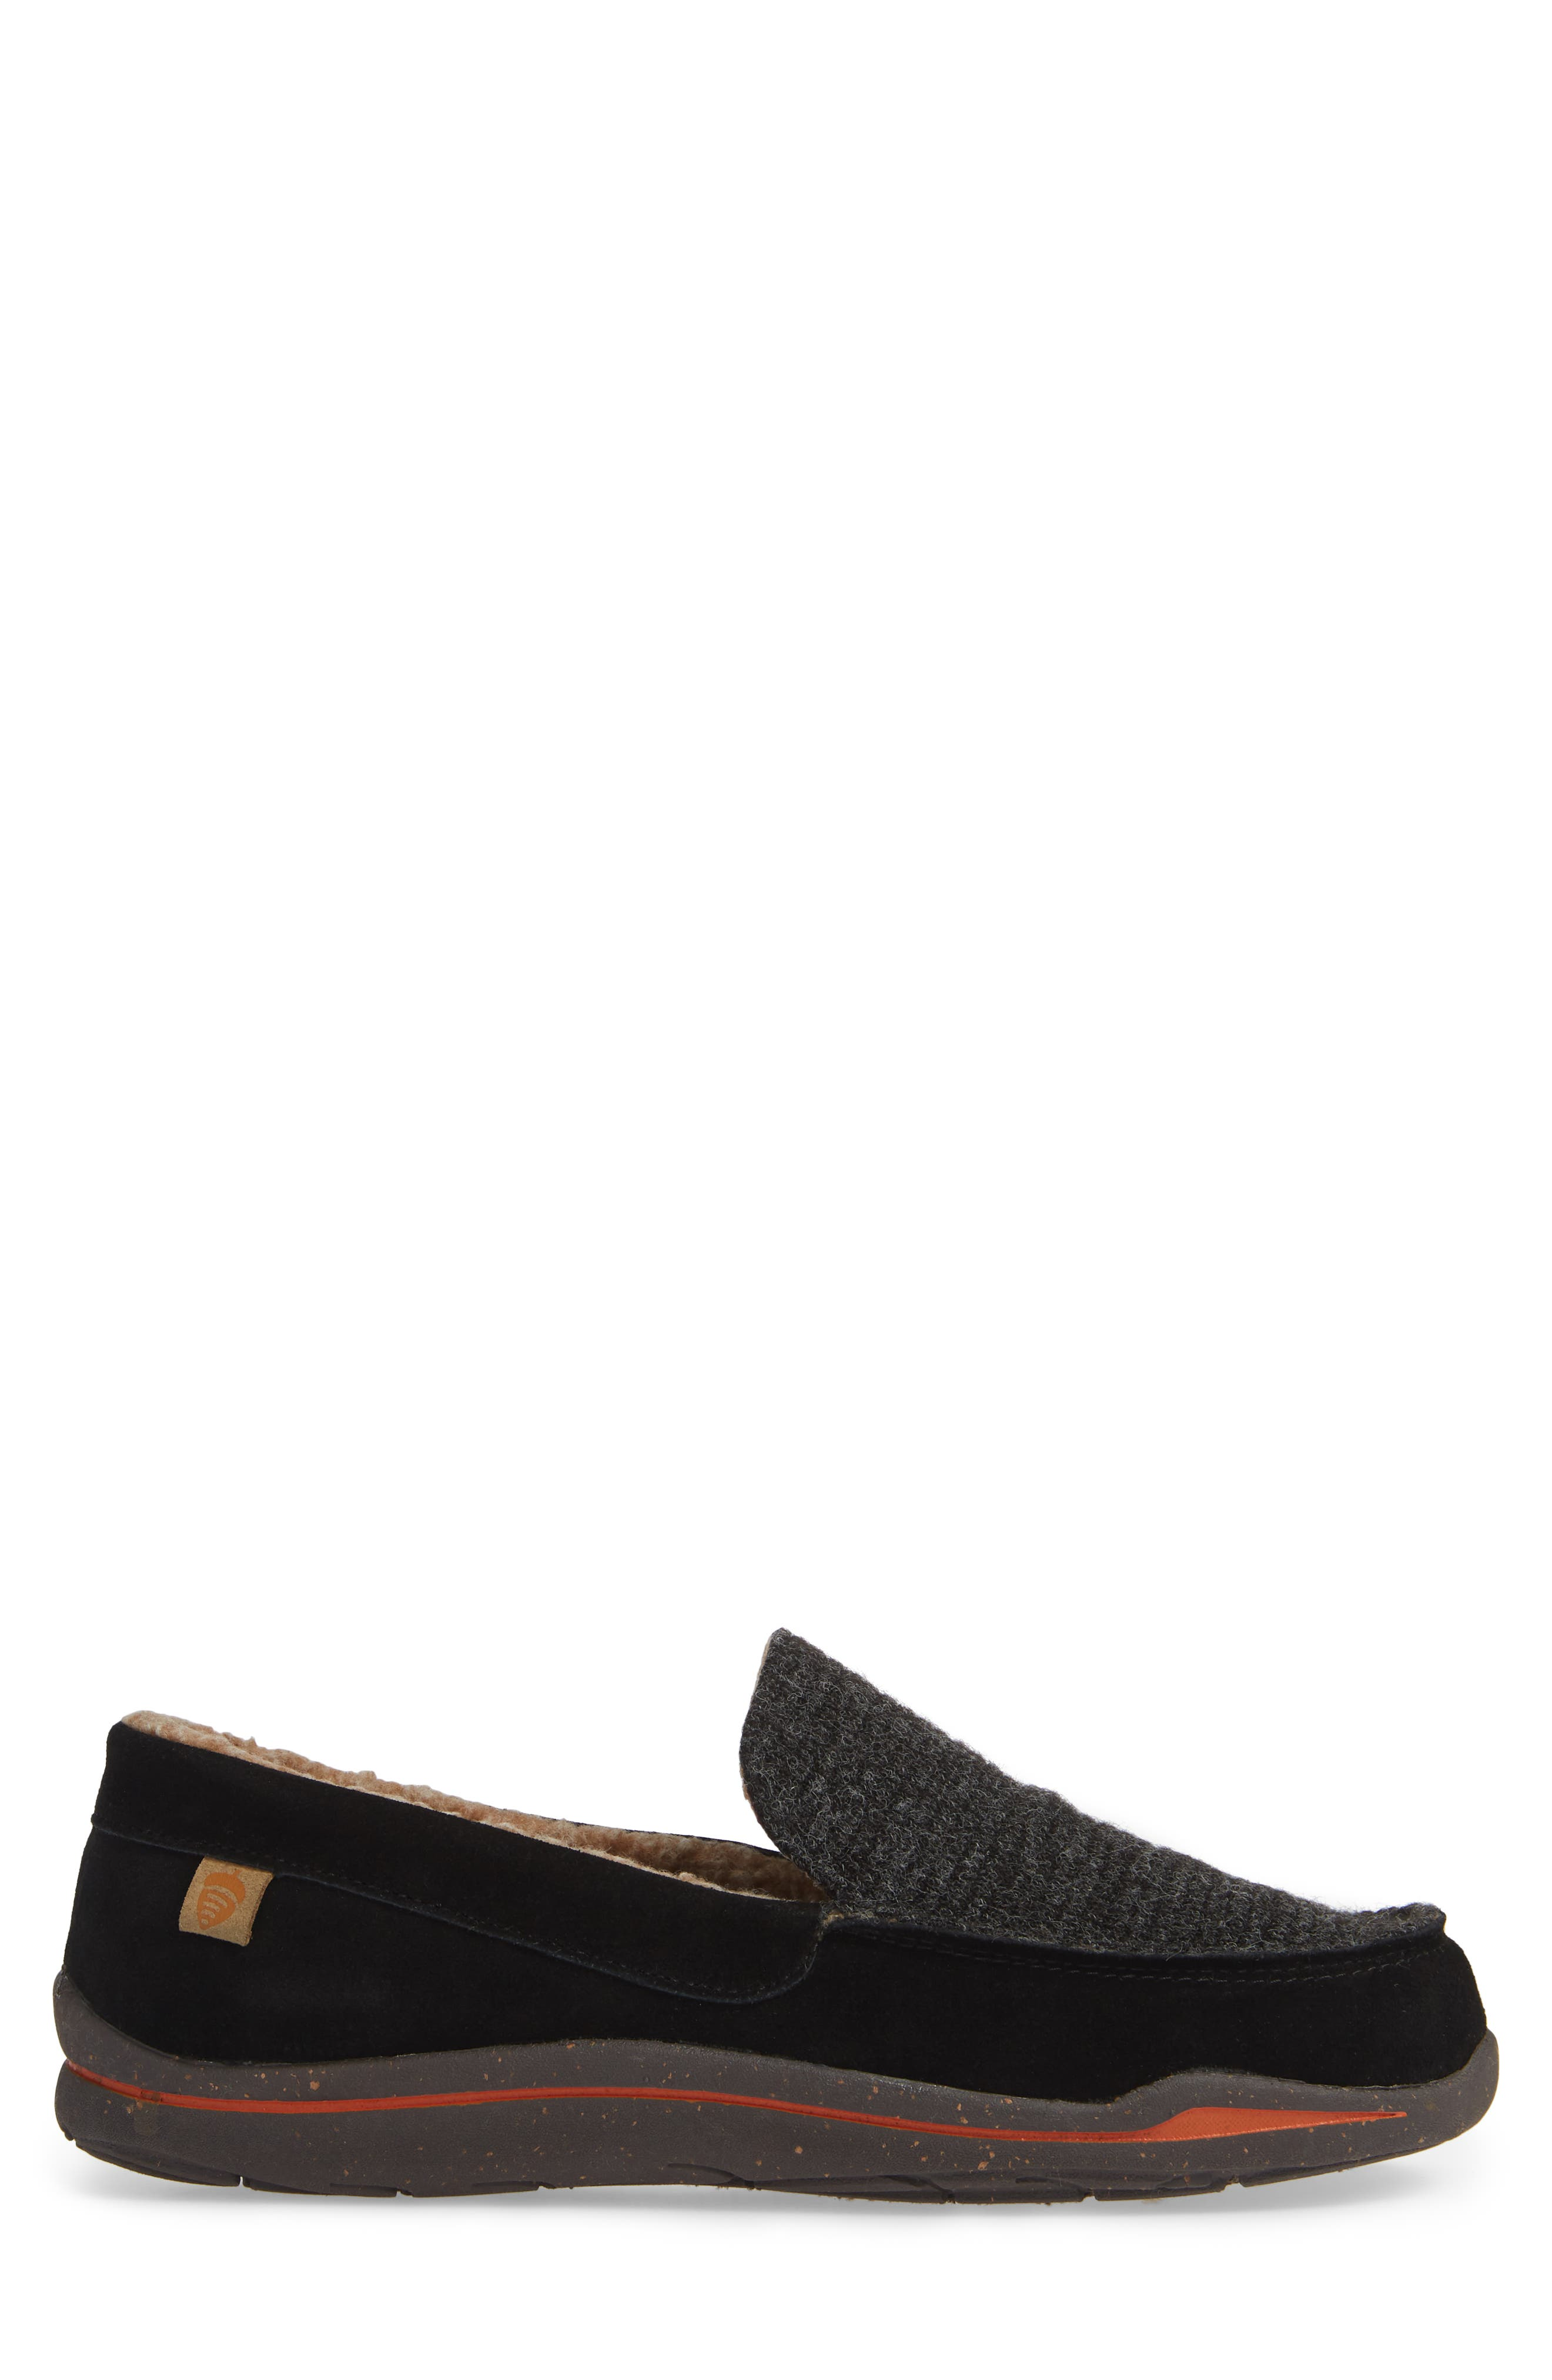 Ellsworth Moc Toe Slipper,                             Alternate thumbnail 3, color,                             BLACK